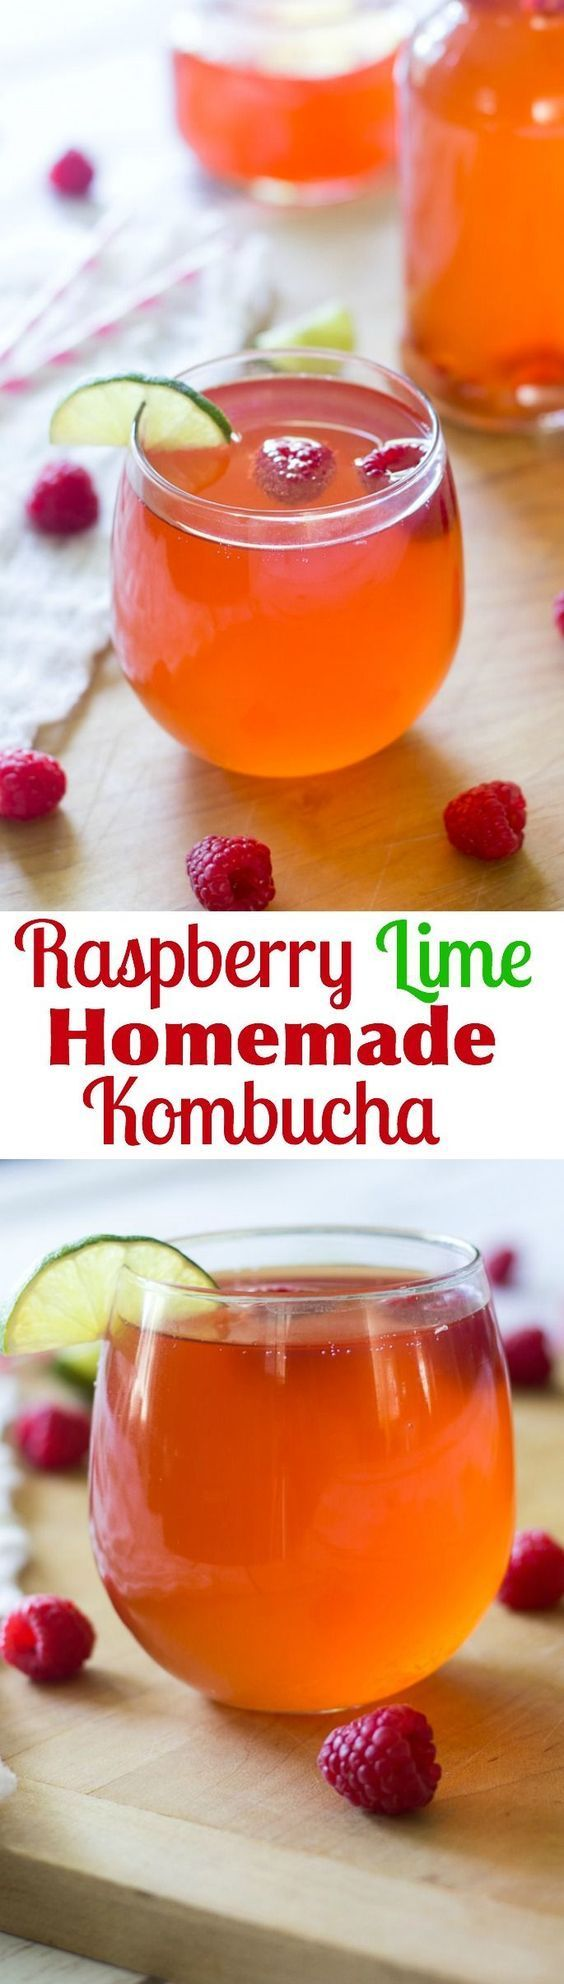 Homemade Raspberry Lime Kombucha #kombuchaselbermachen Raspberry Lime Homemade Kombucha - Paleo, Whole30 friendly, vegan and tons of health benefits #kombuchaselbermachen